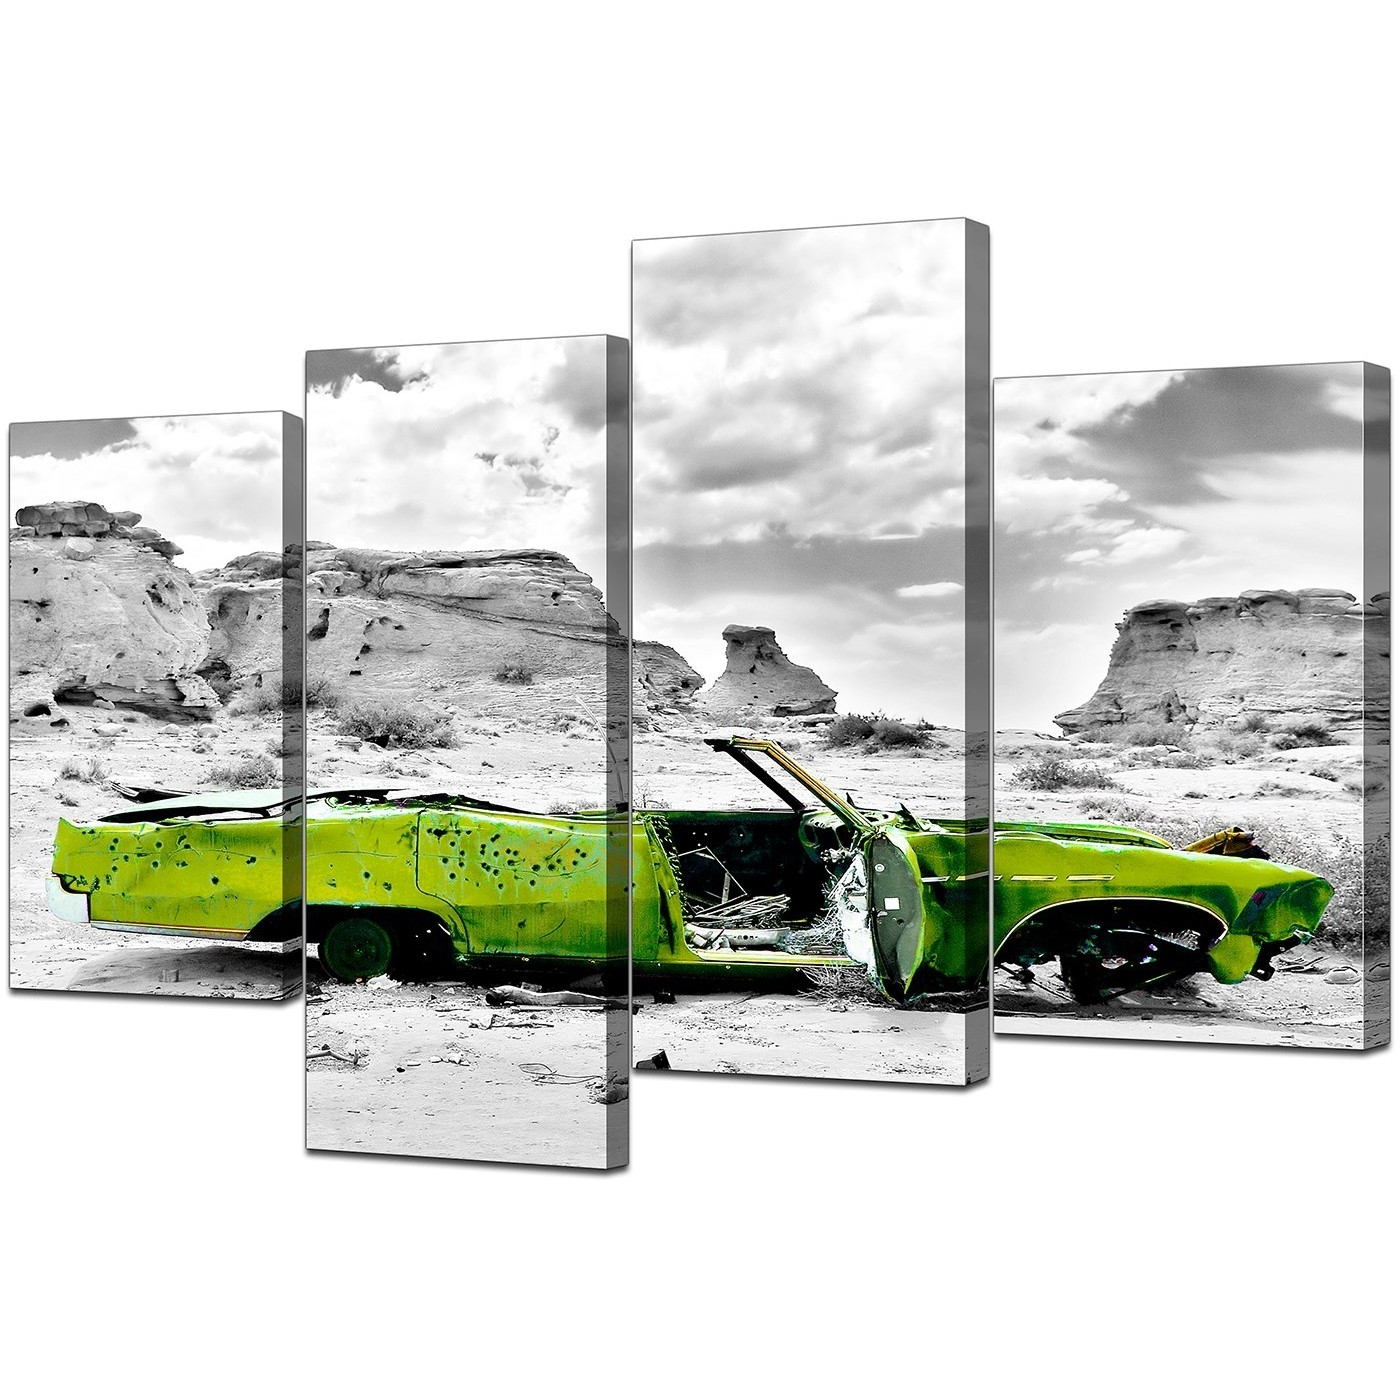 Canvas Art Of Green Car In Black & White For Your Office Intended For Widely Used Lime Green Canvas Wall Art (View 8 of 15)